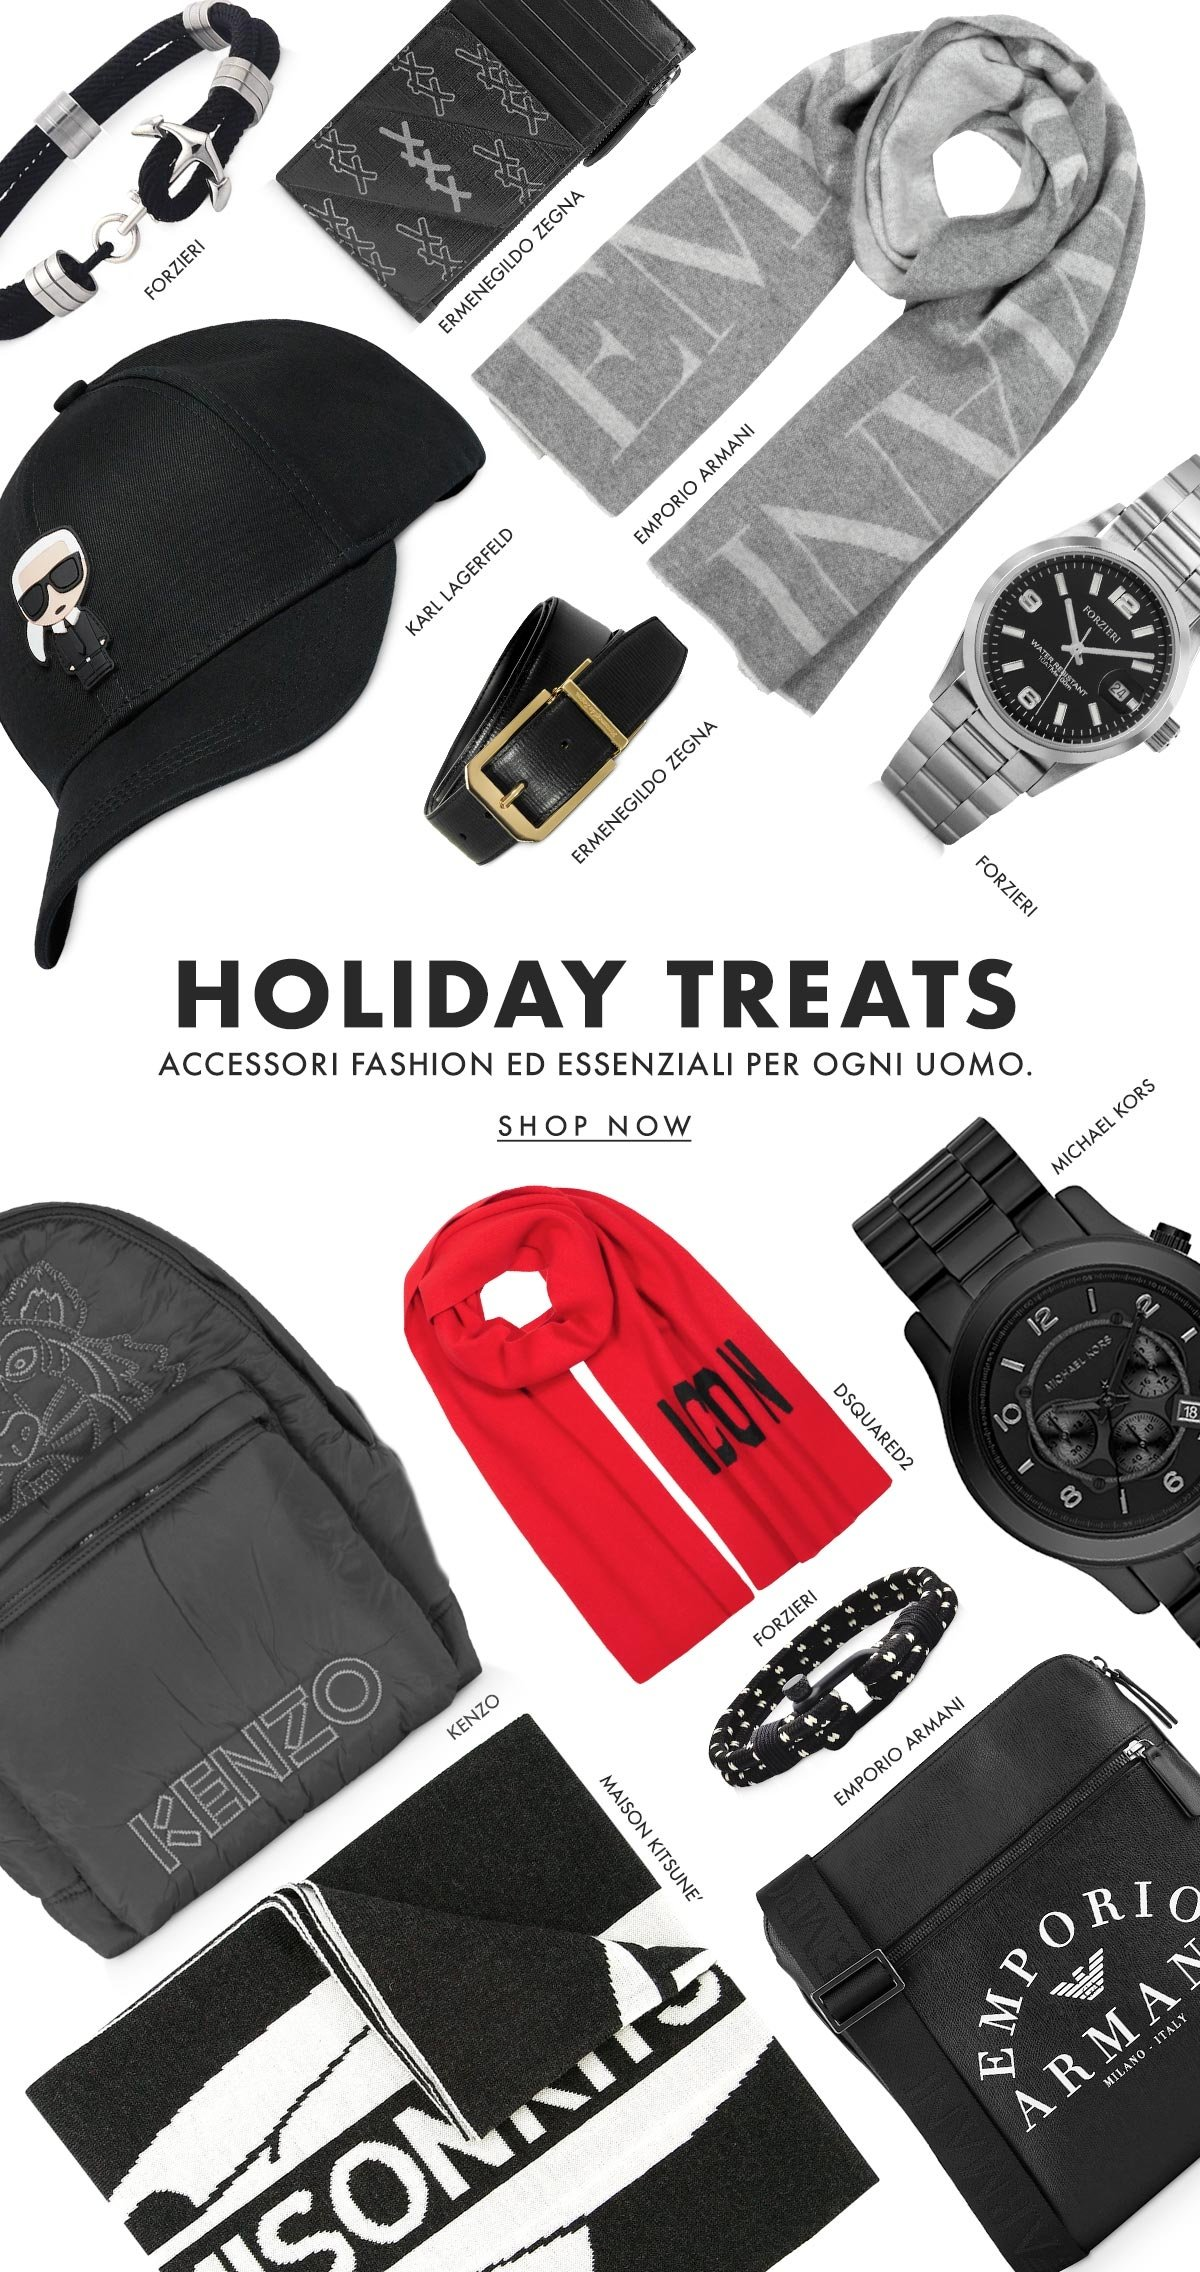 Holiday Treats - Fashionable essentials for every man